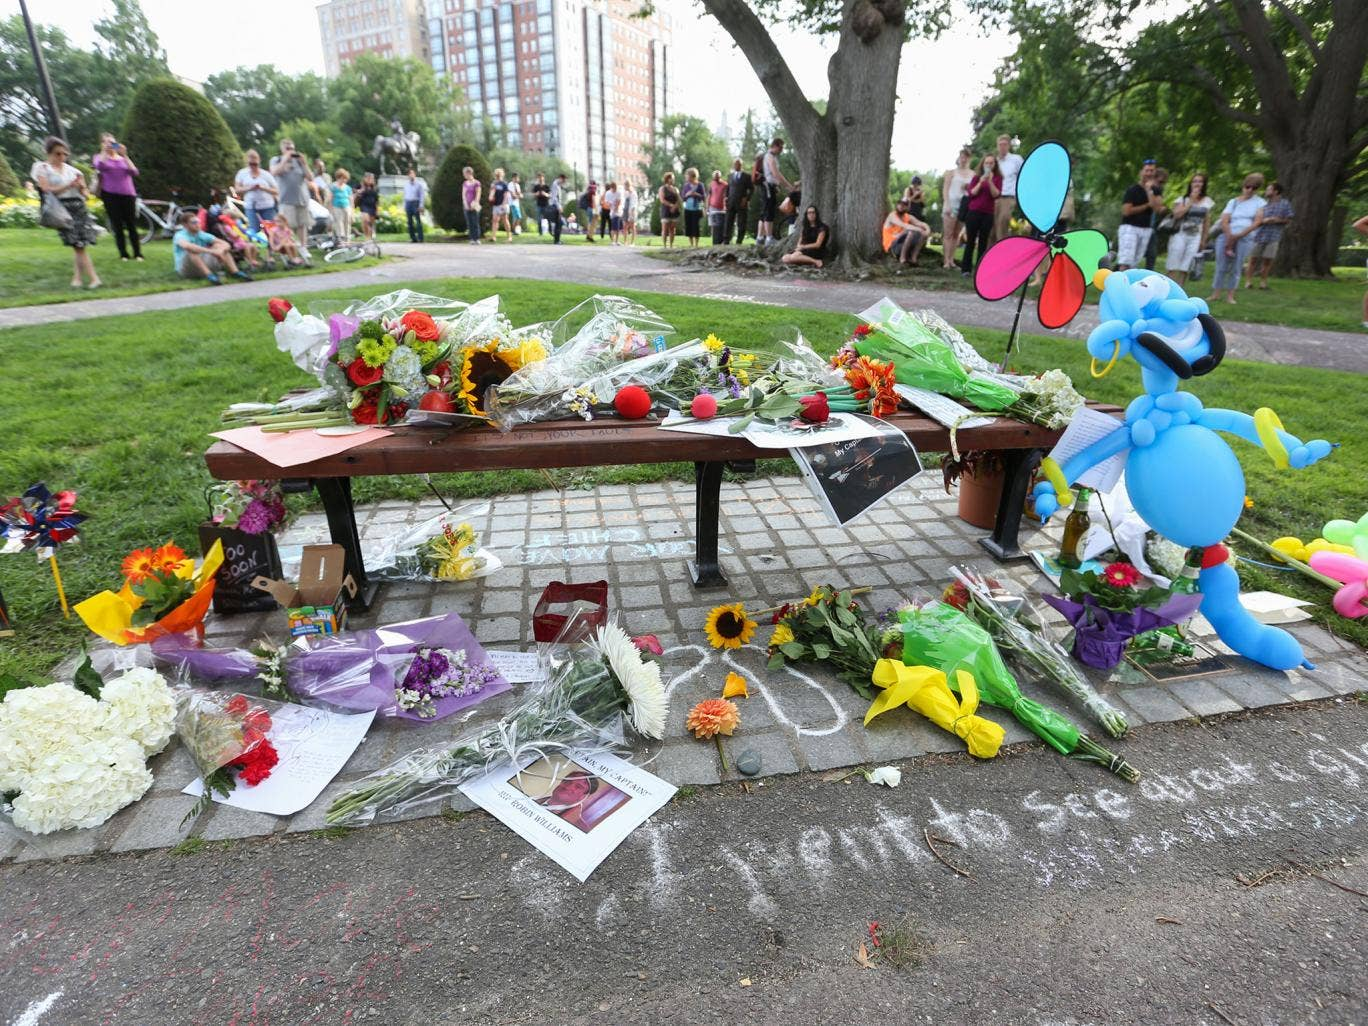 Crowds gather to pay tribute to fallen actor Robin Williams near the bench in the Boston Public Garden in Boston, Massachusetts where Robin Williams filmed a famous scene with actor Matt Damon for the movie 'Good Will Hunting'